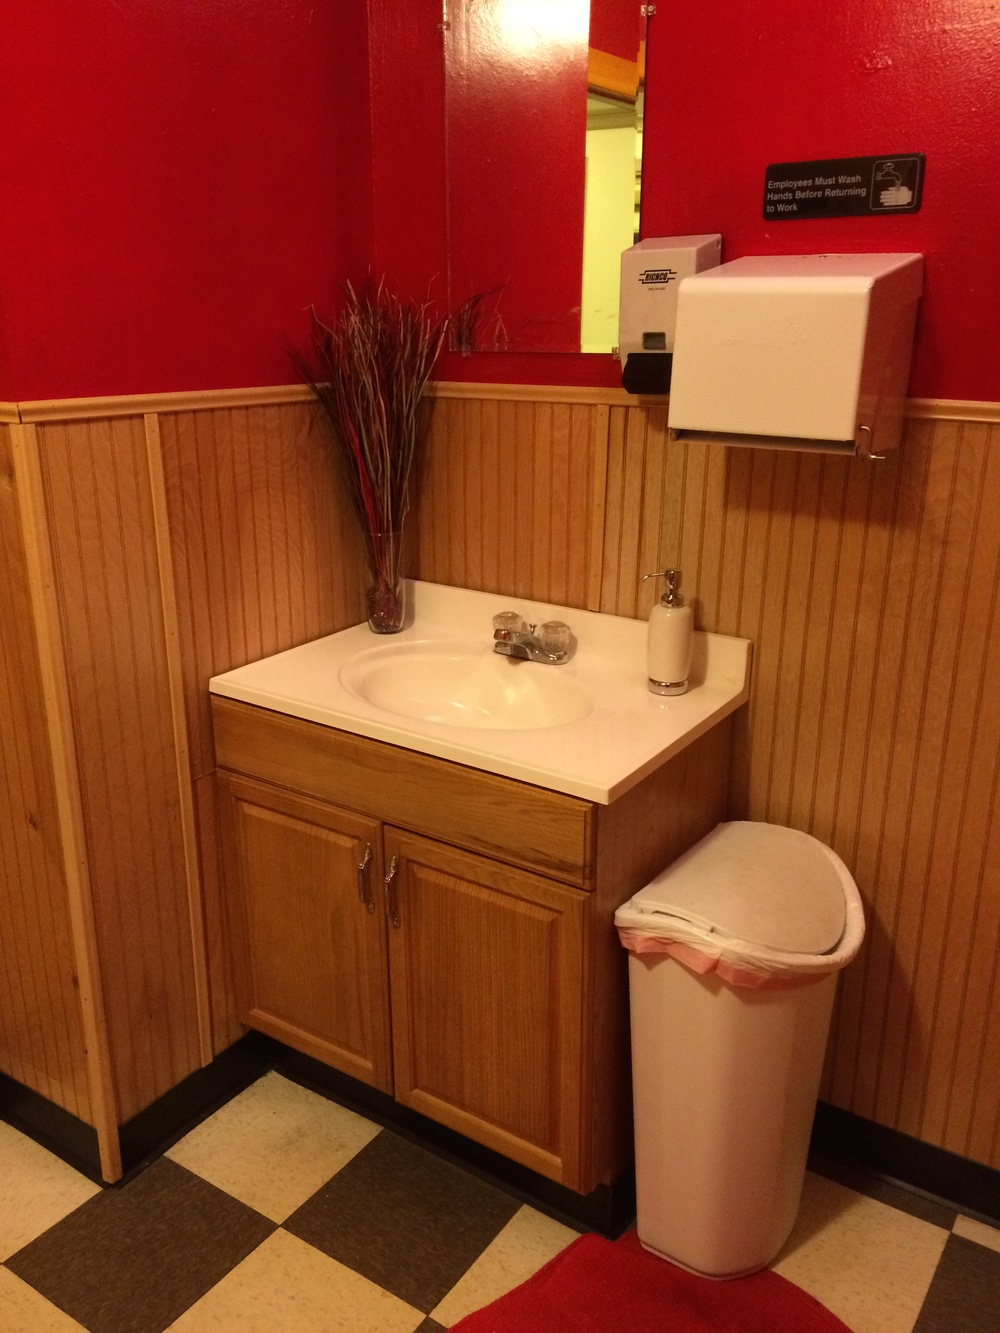 Red Bathroom 3.jpg